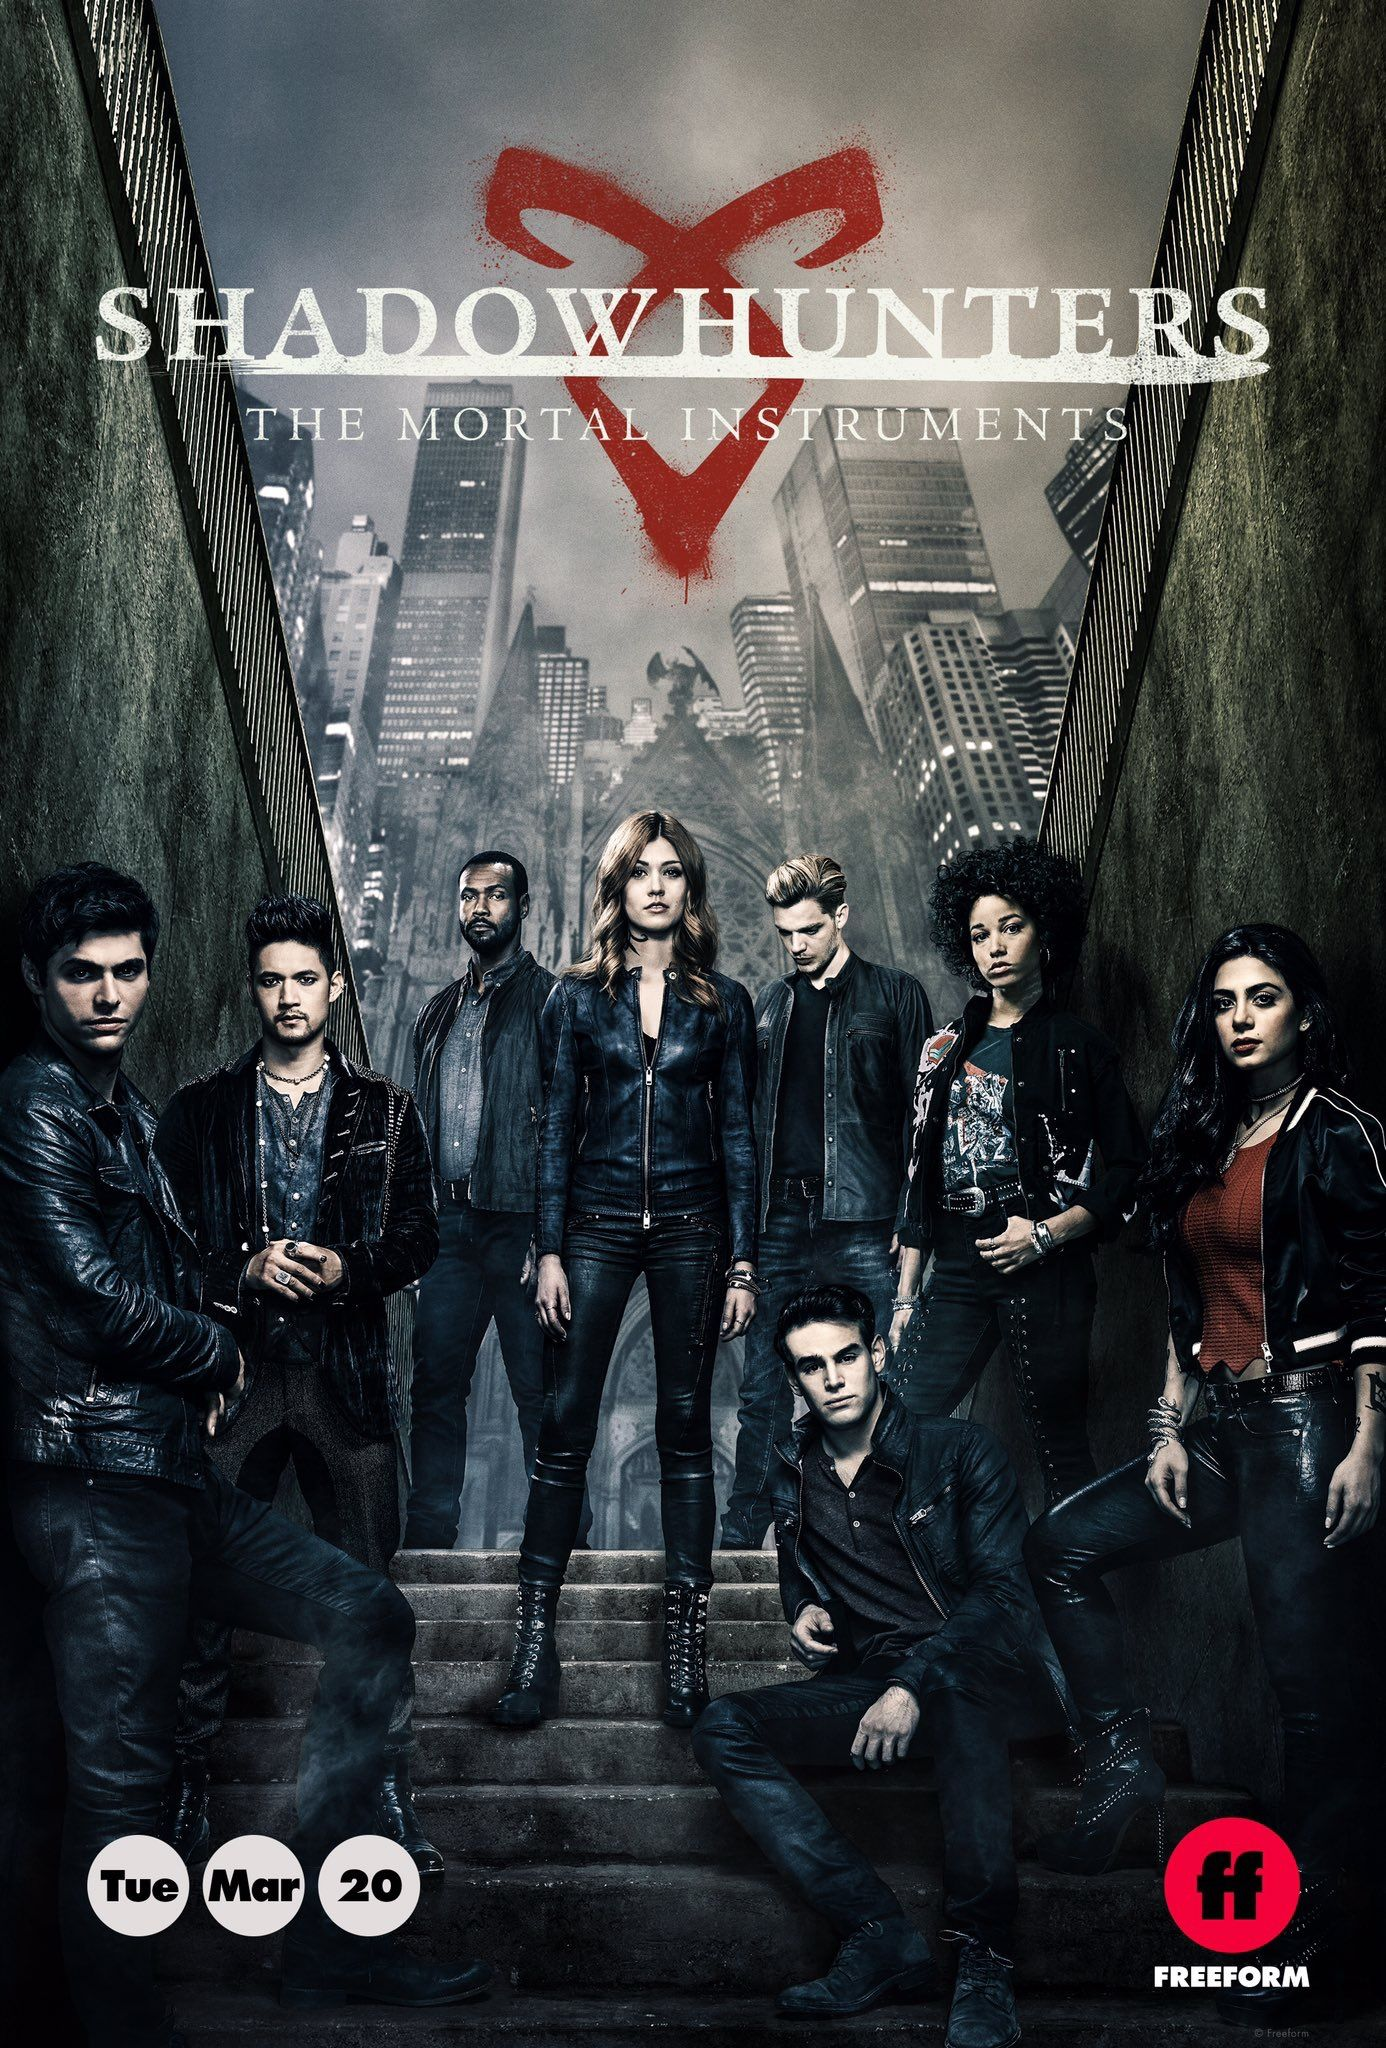 Shadowhunters: The Mortal Instruments cover